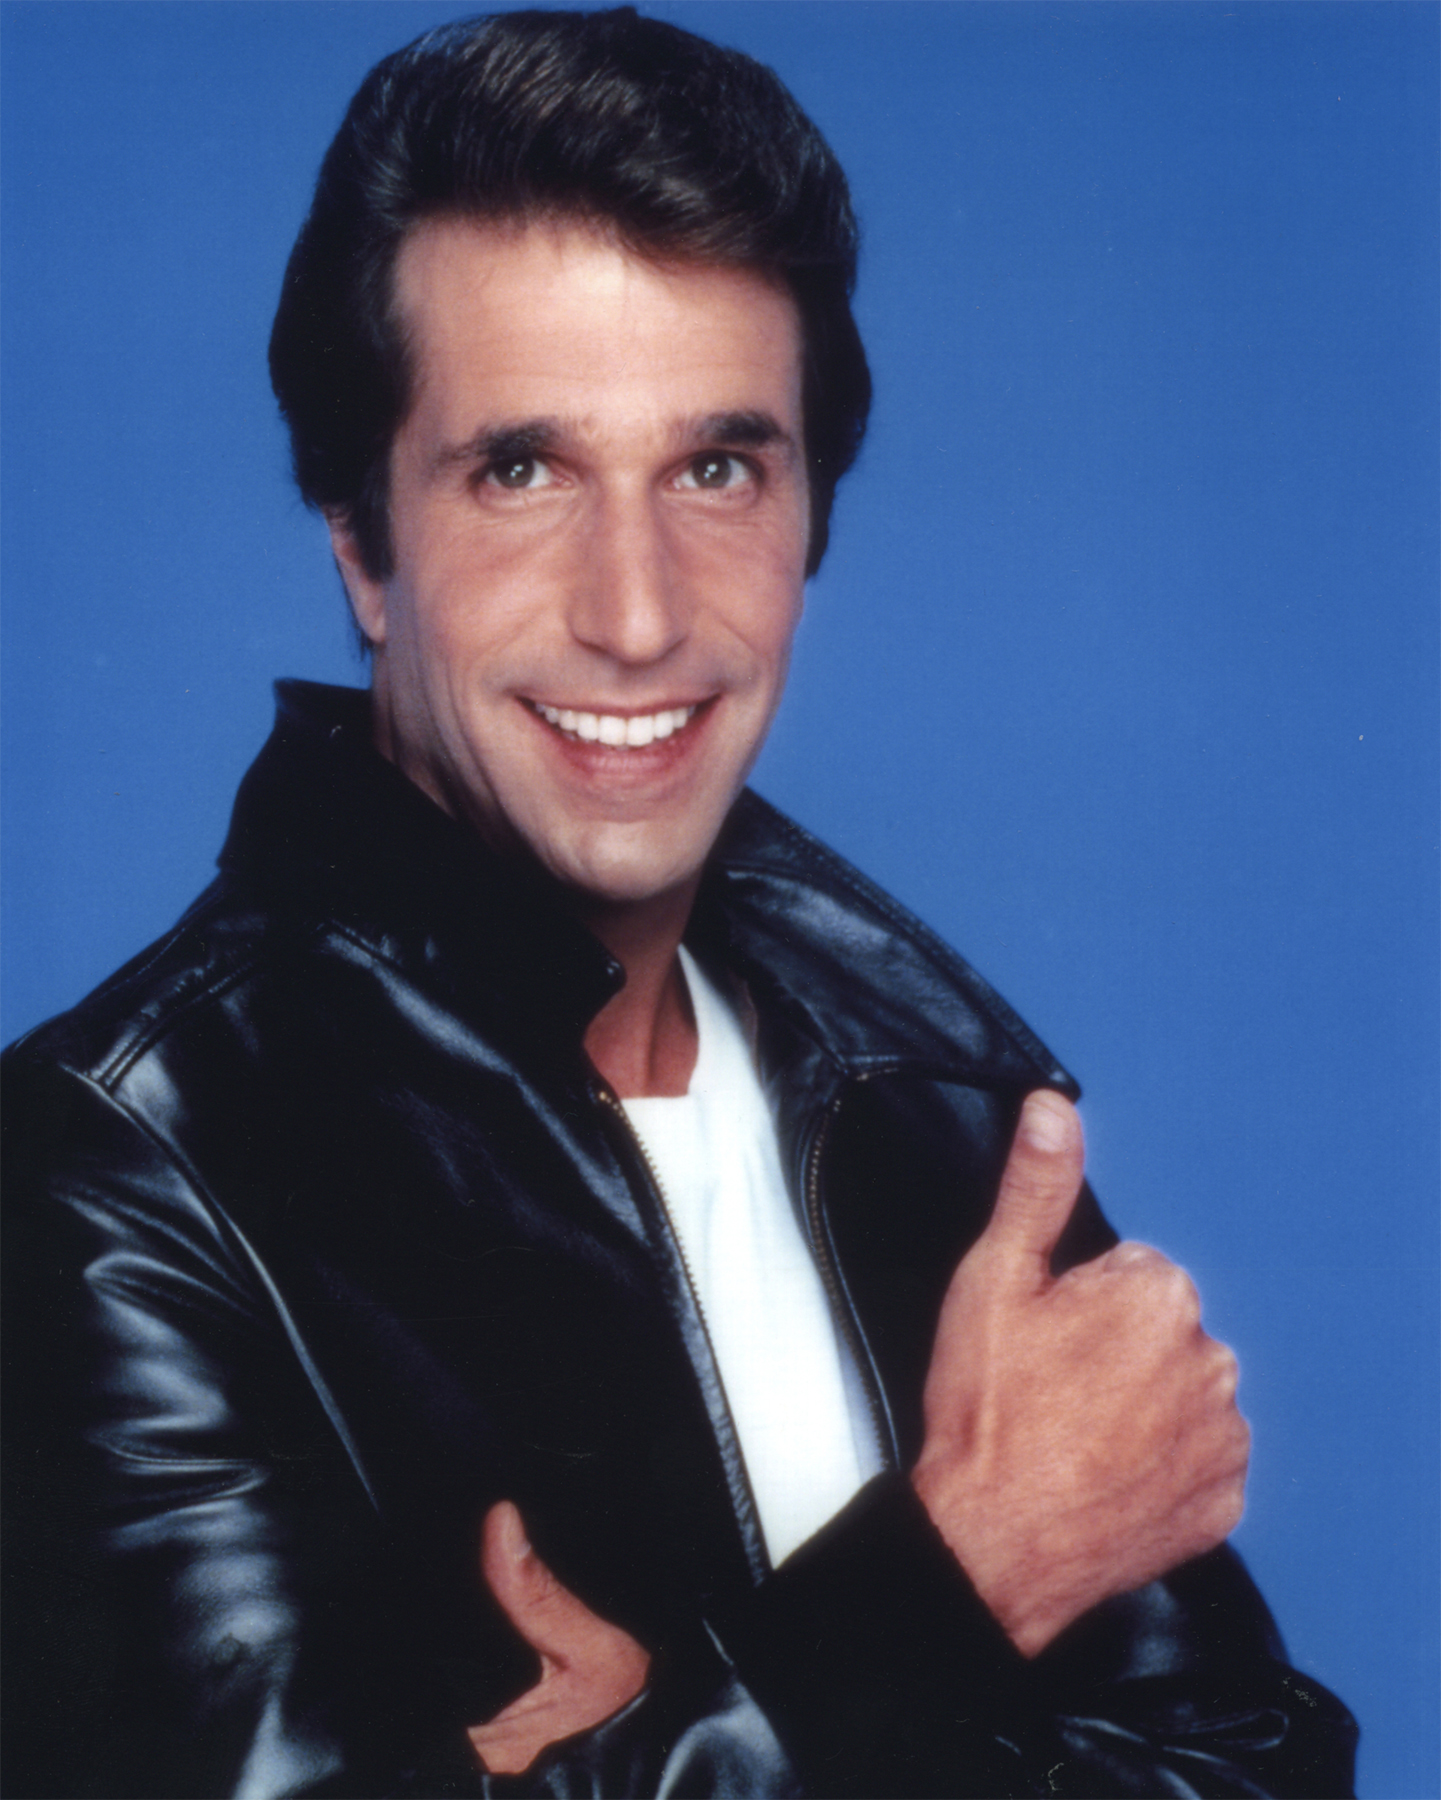 Henry Winkler thumbs up